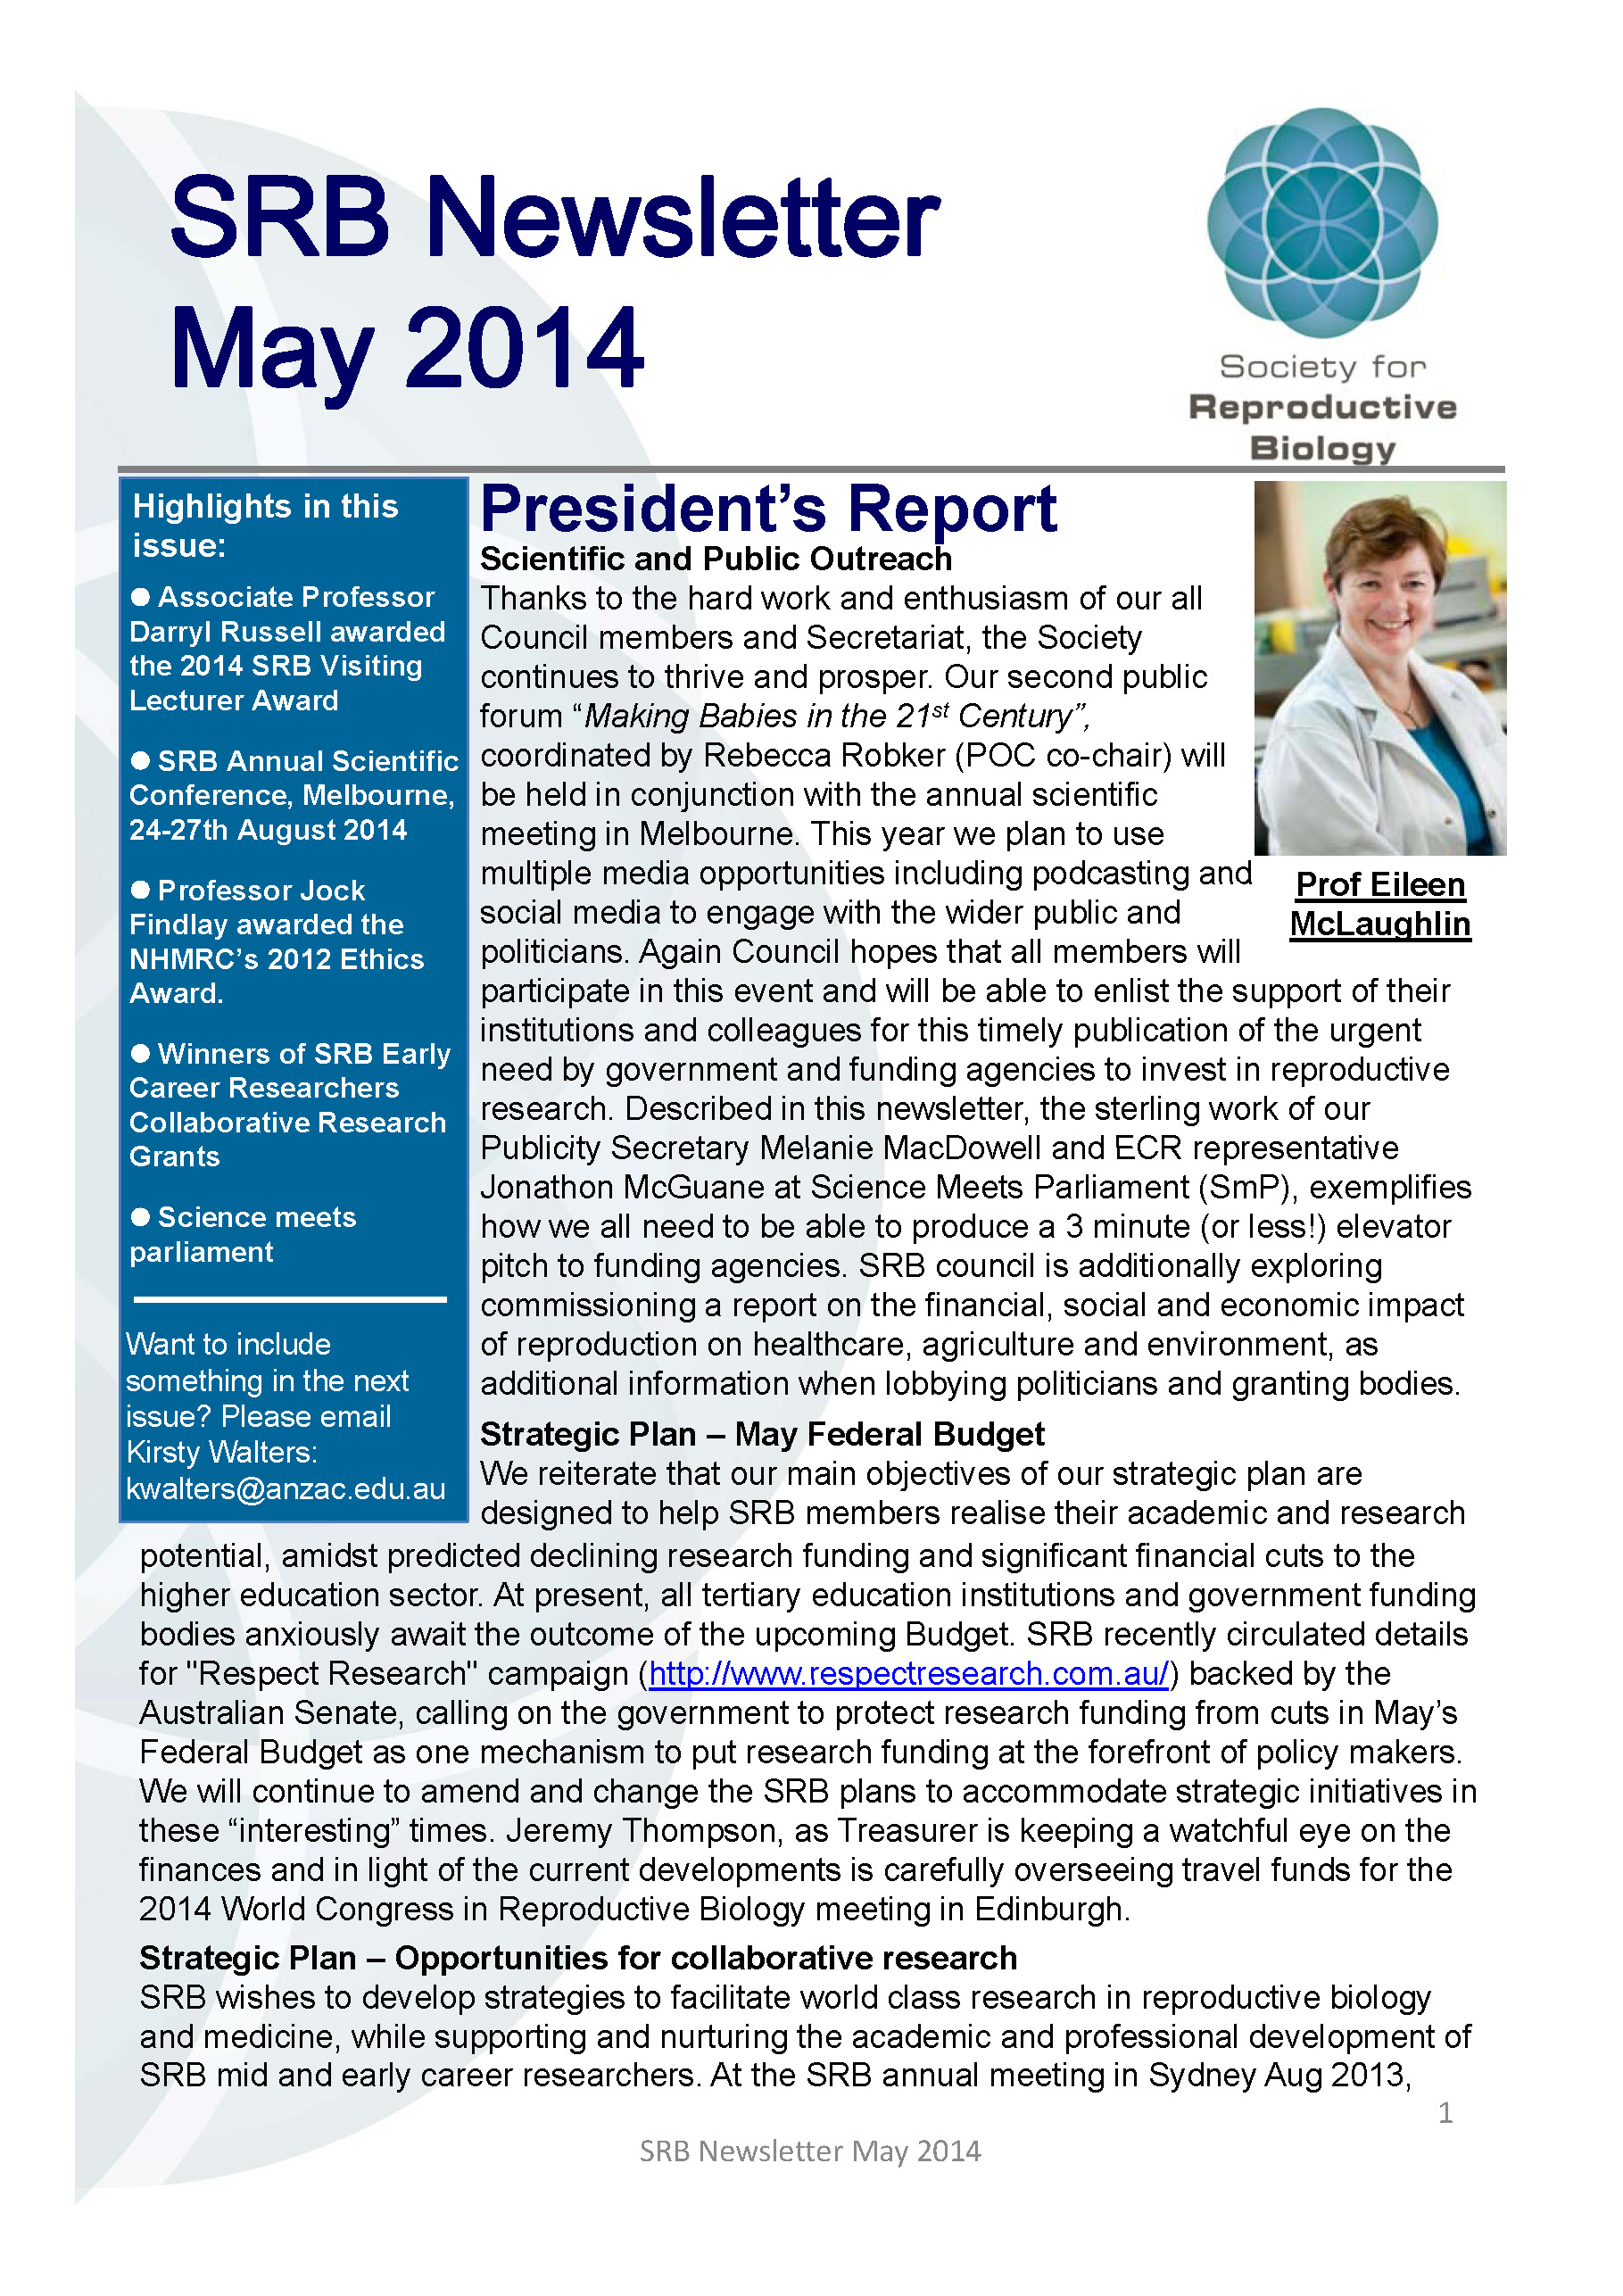 Final-SRB-Newsletter-May-2014-v2_Page_01.jpg